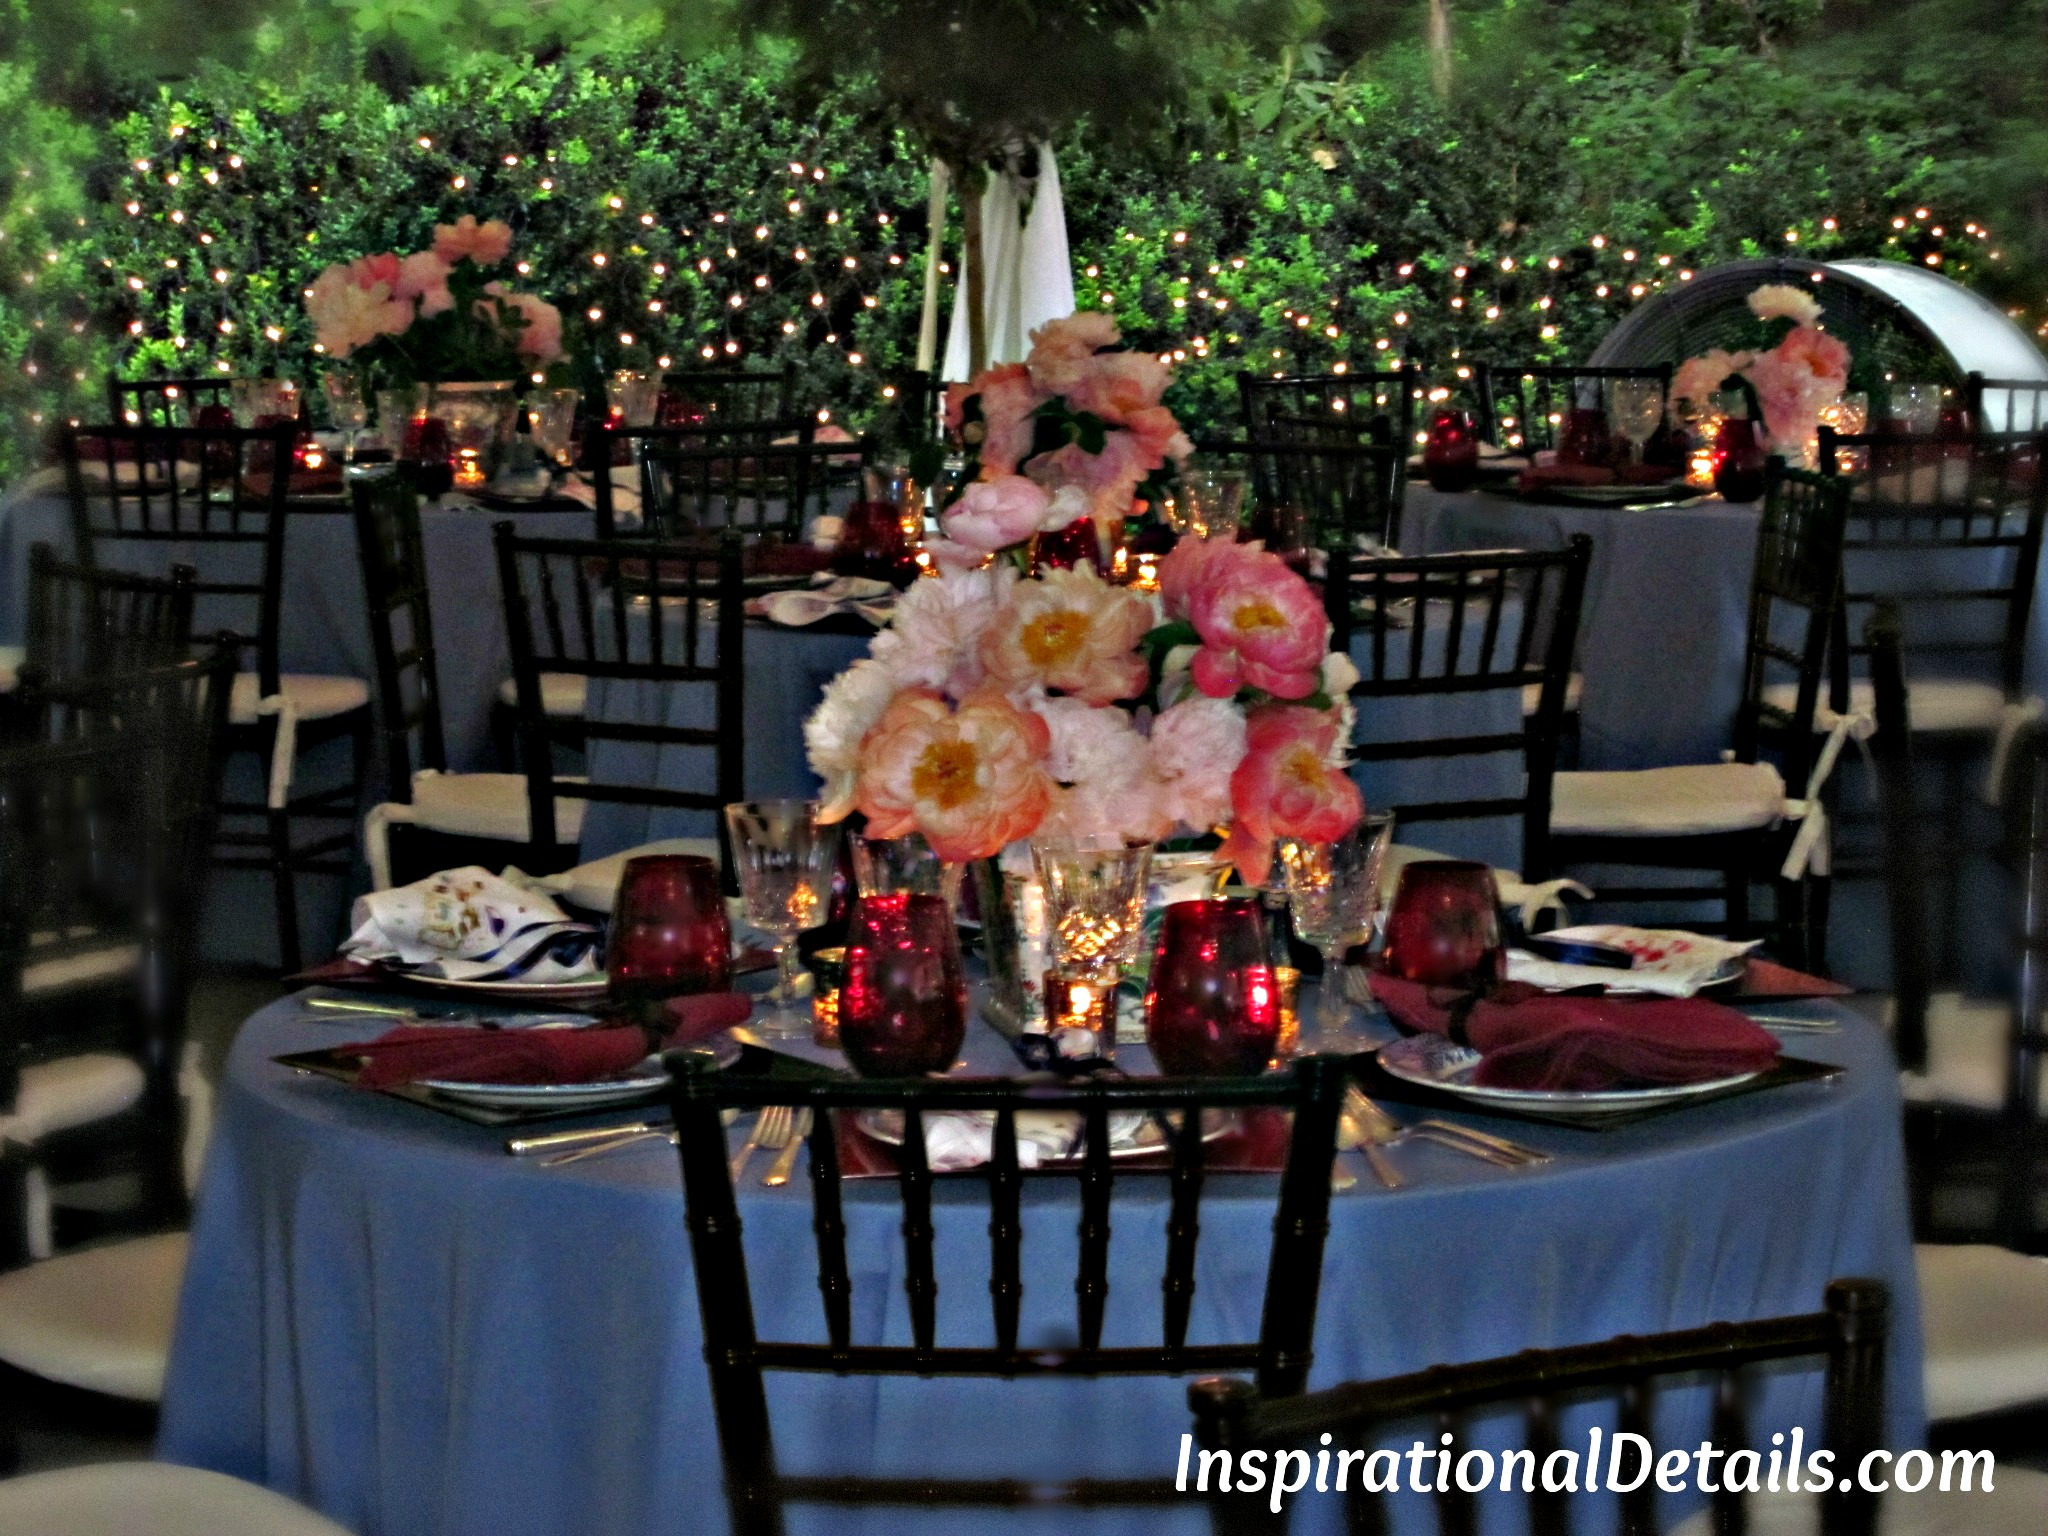 How to throw an engagement party on a budget in easy ways